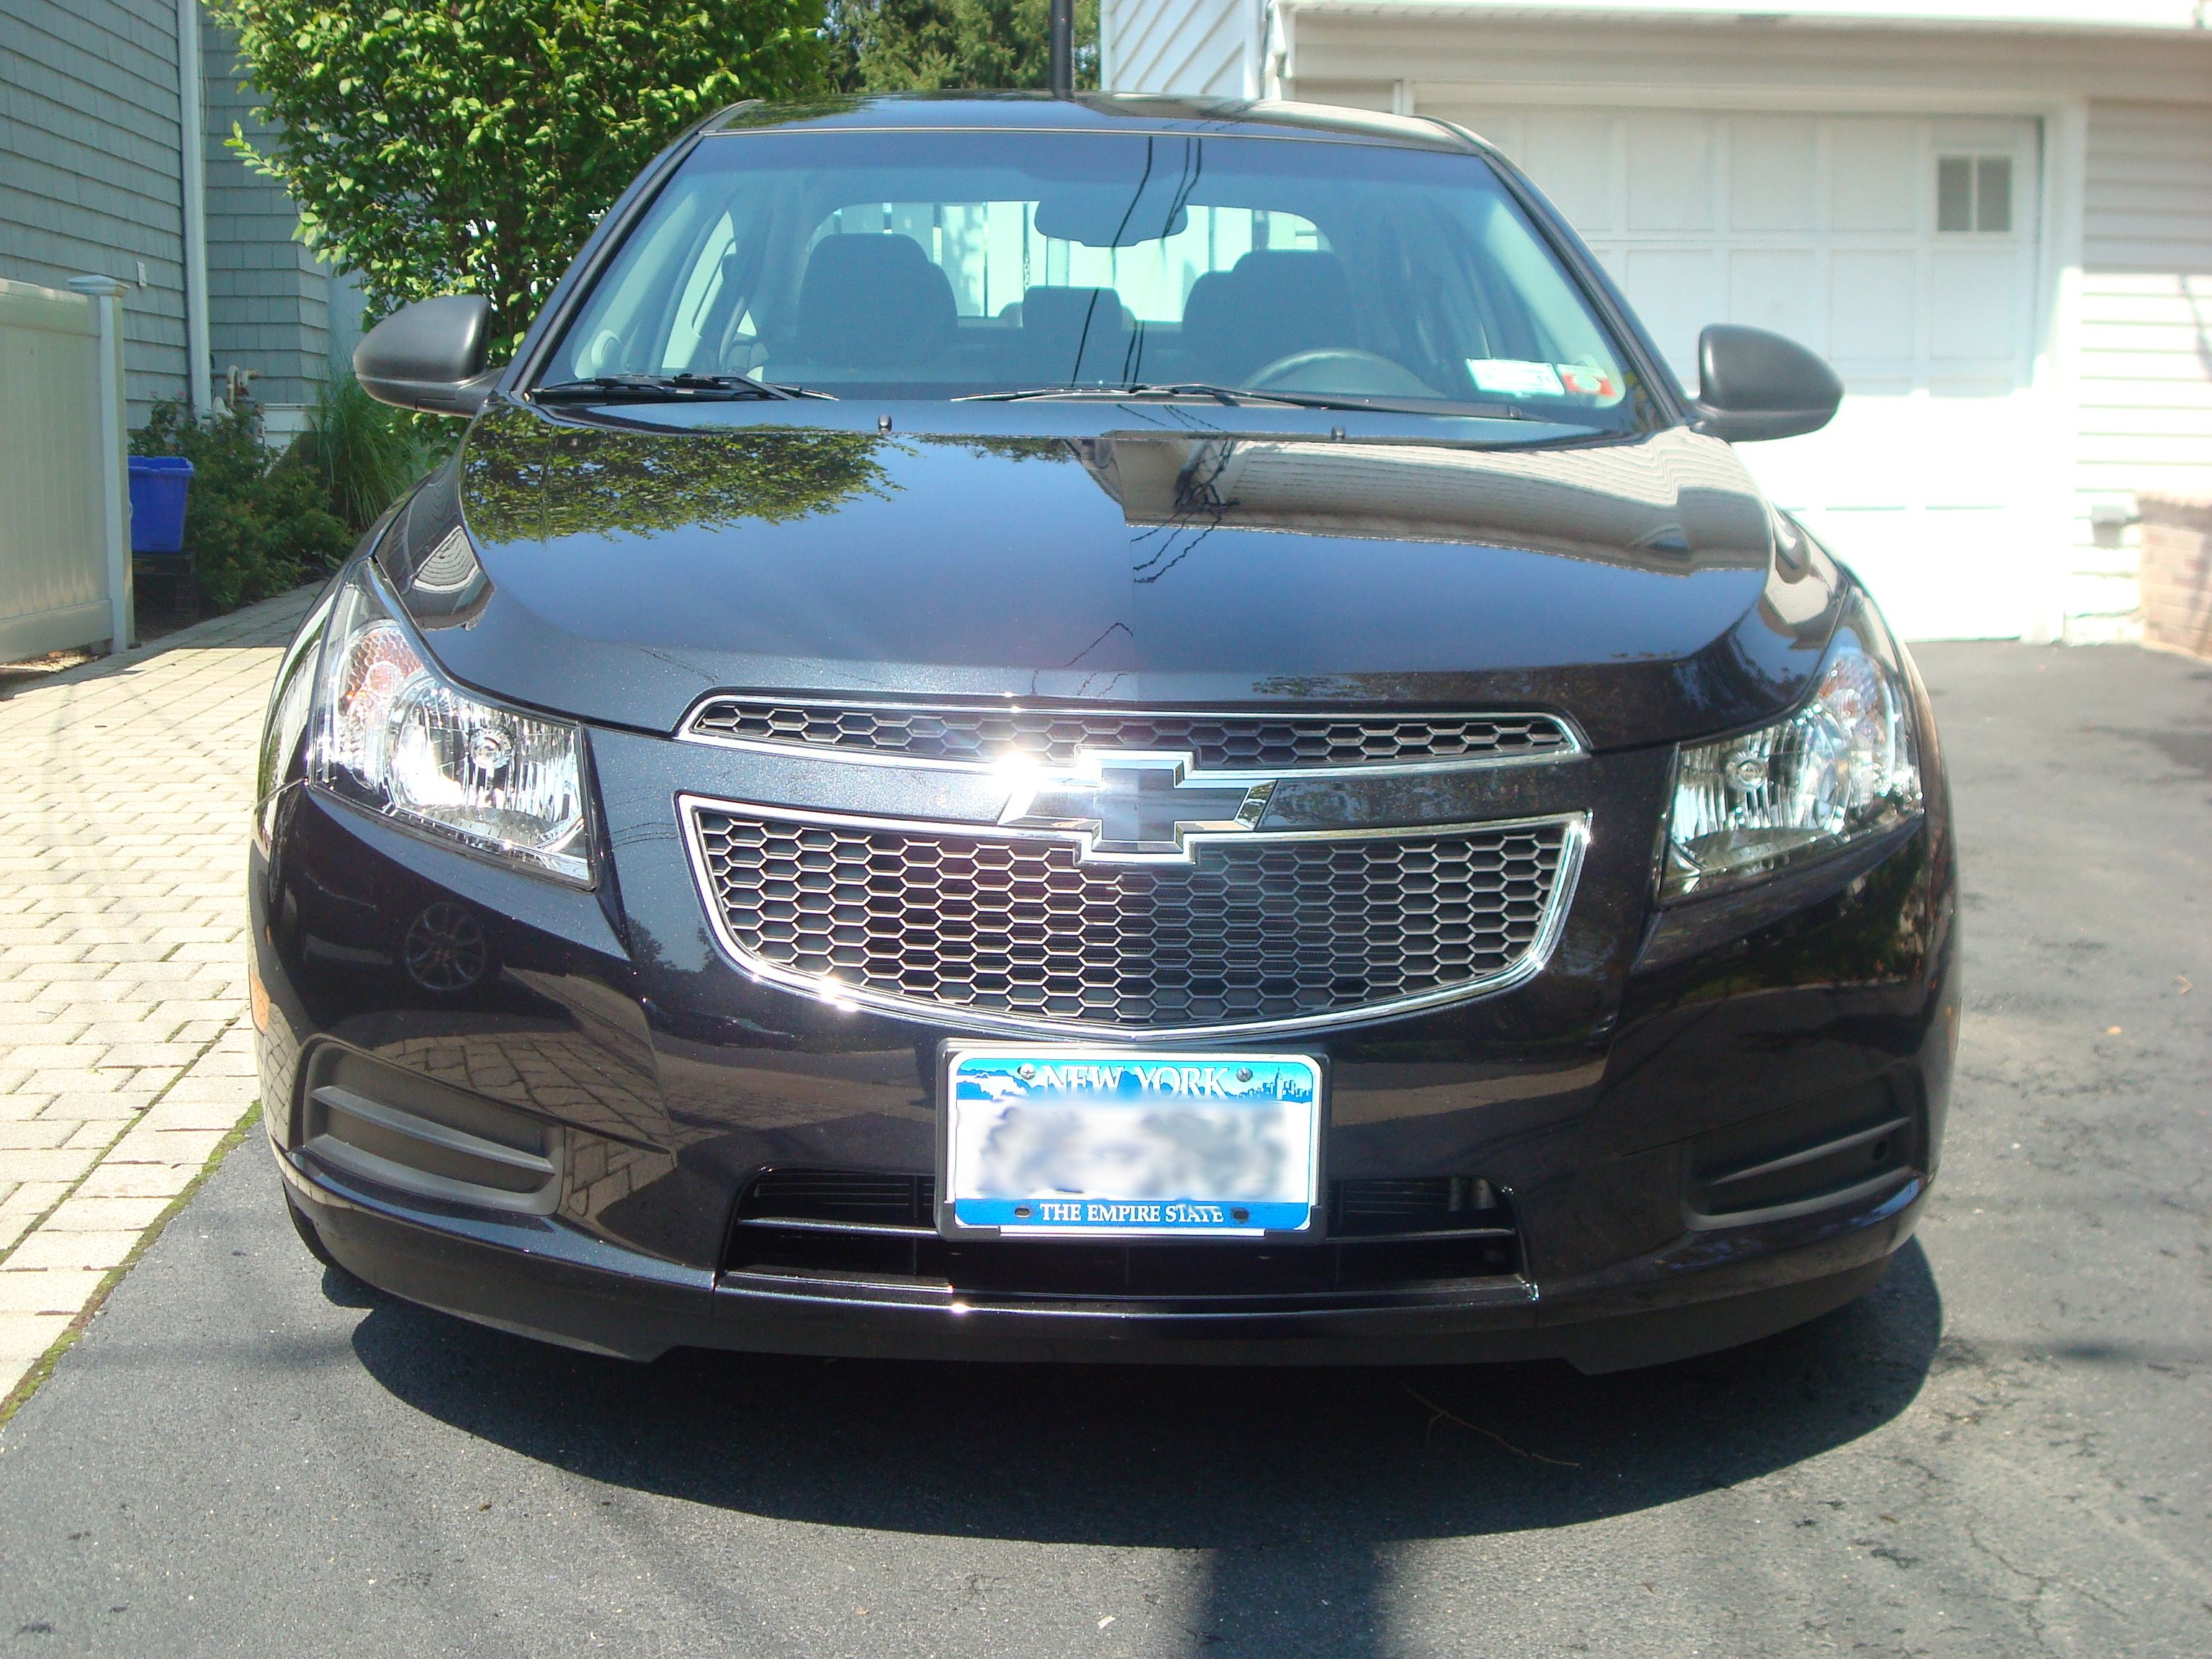 ecsurfer8 2011 chevrolet cruze specs photos modification. Black Bedroom Furniture Sets. Home Design Ideas